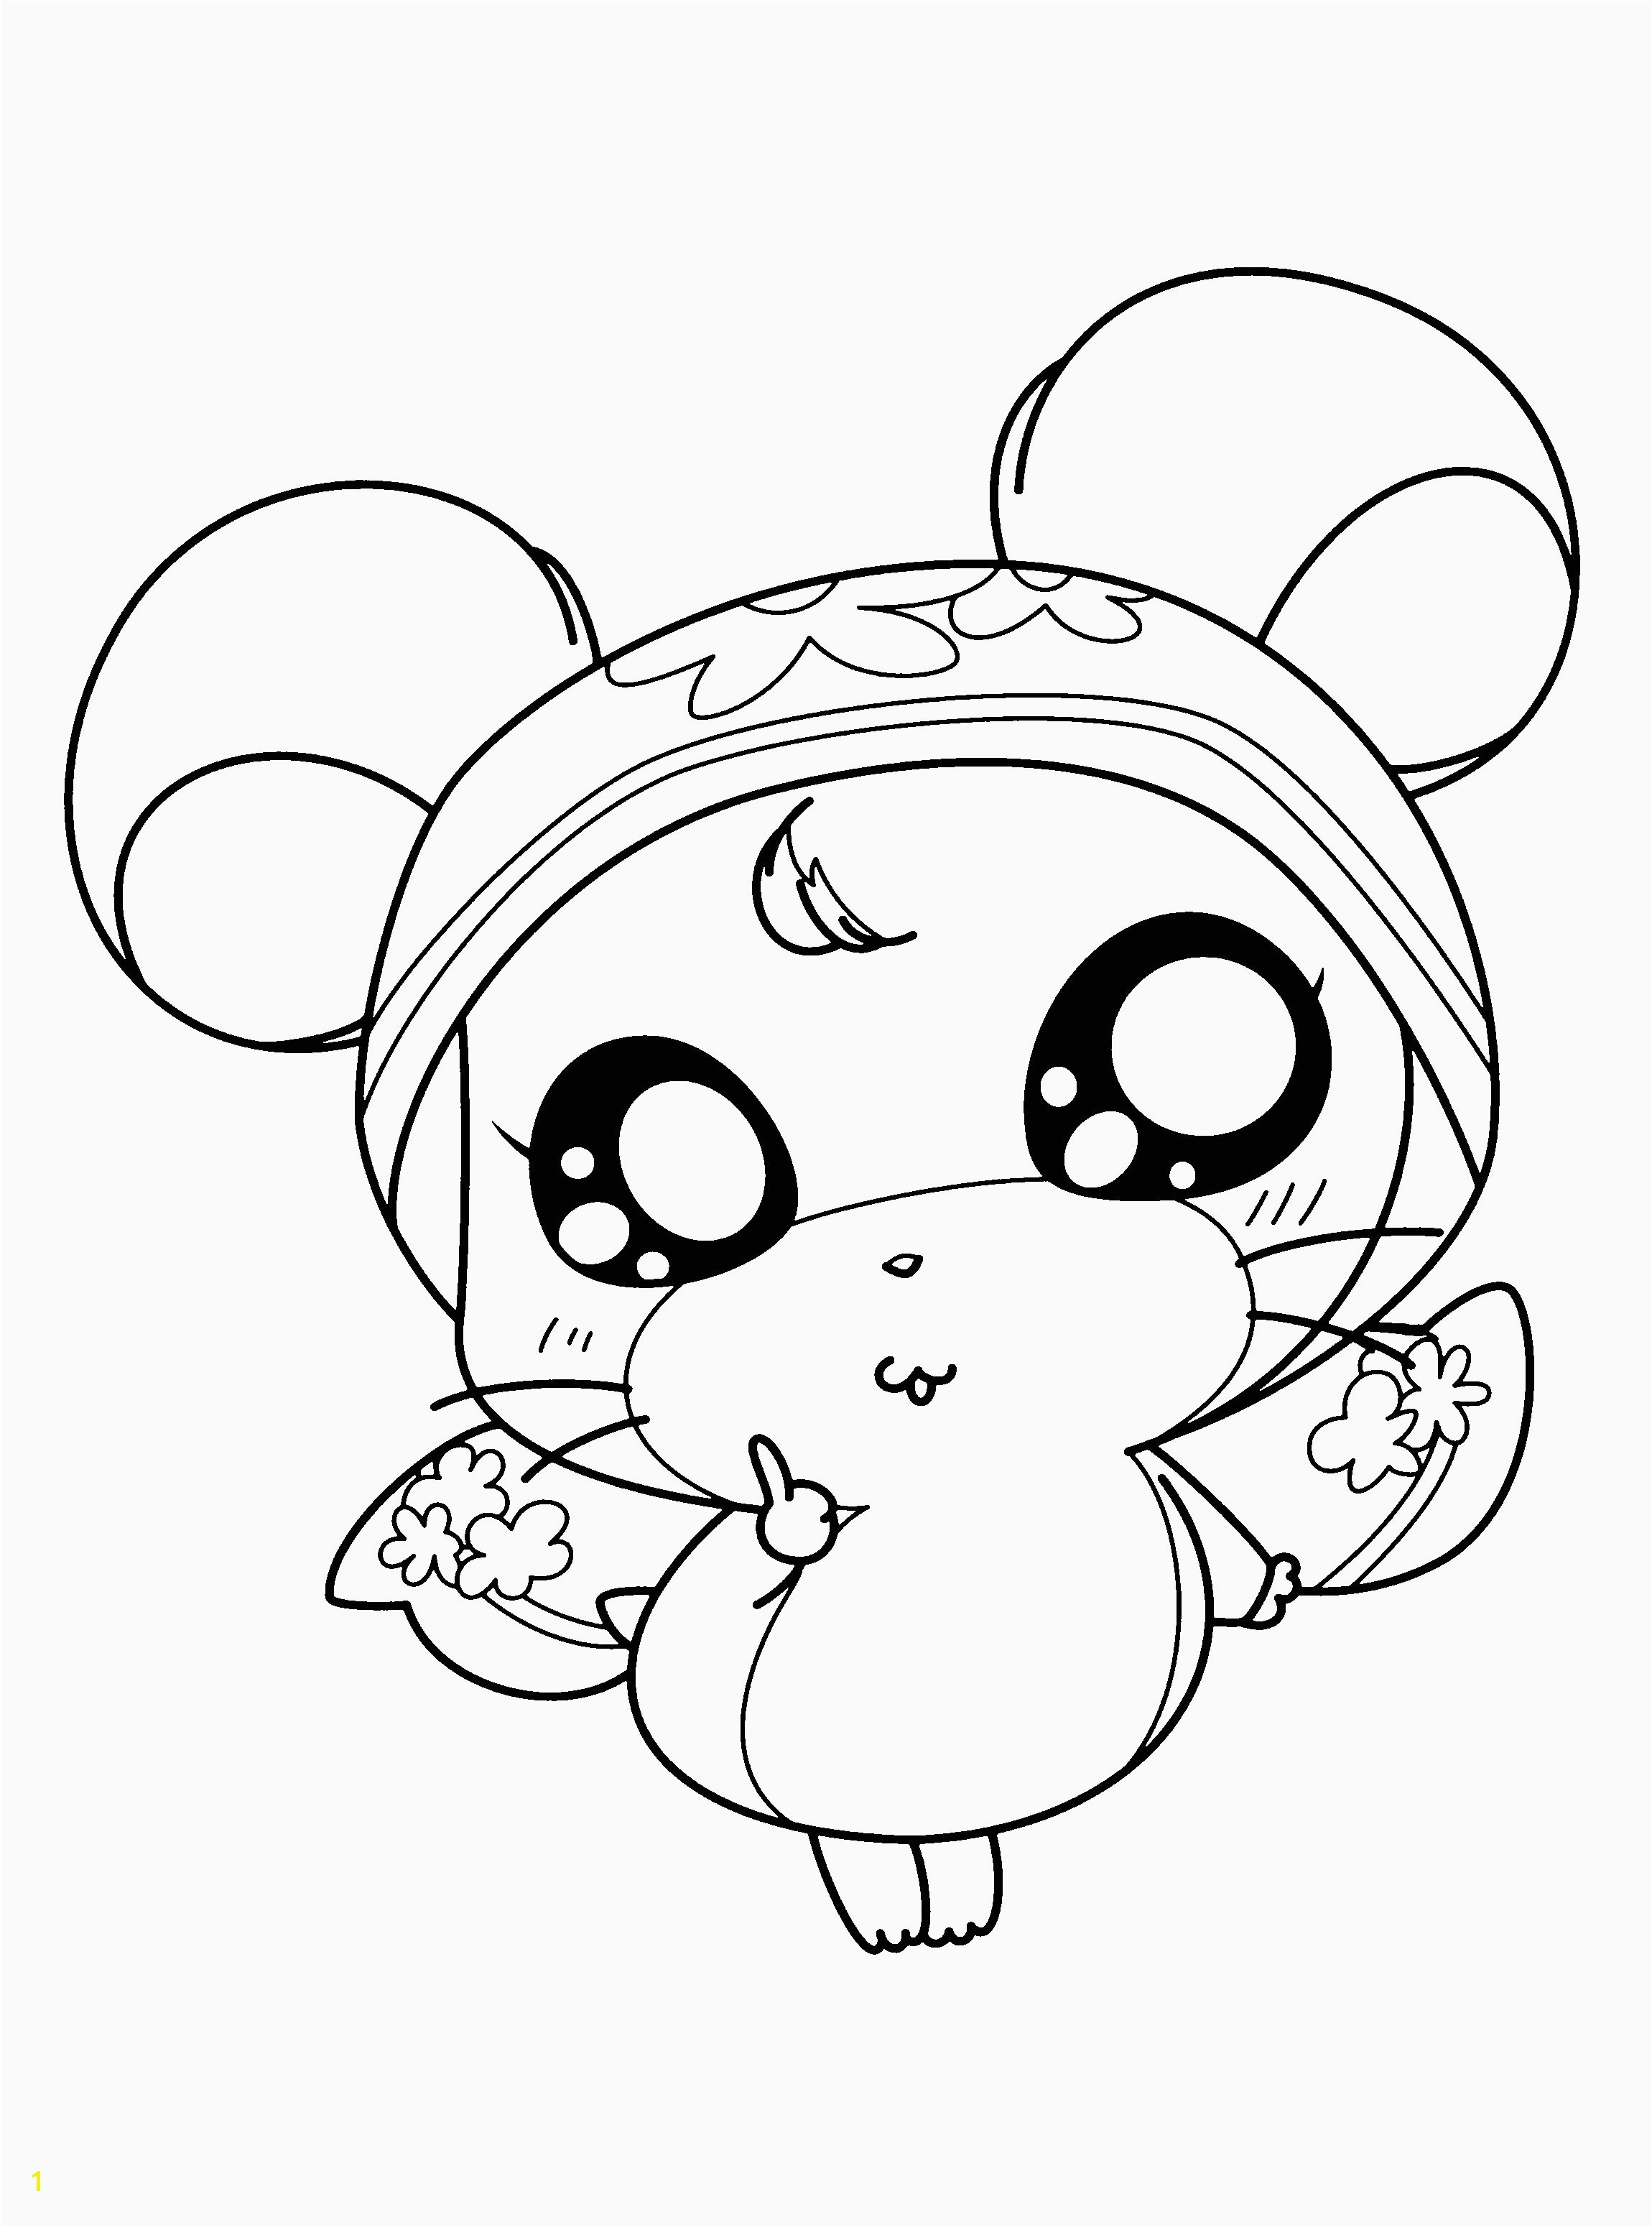 Heathermarxgallery Coloring Pages For Kids Animals Animal Coloring Pages For Kids Unique Printable Coloring Pages For